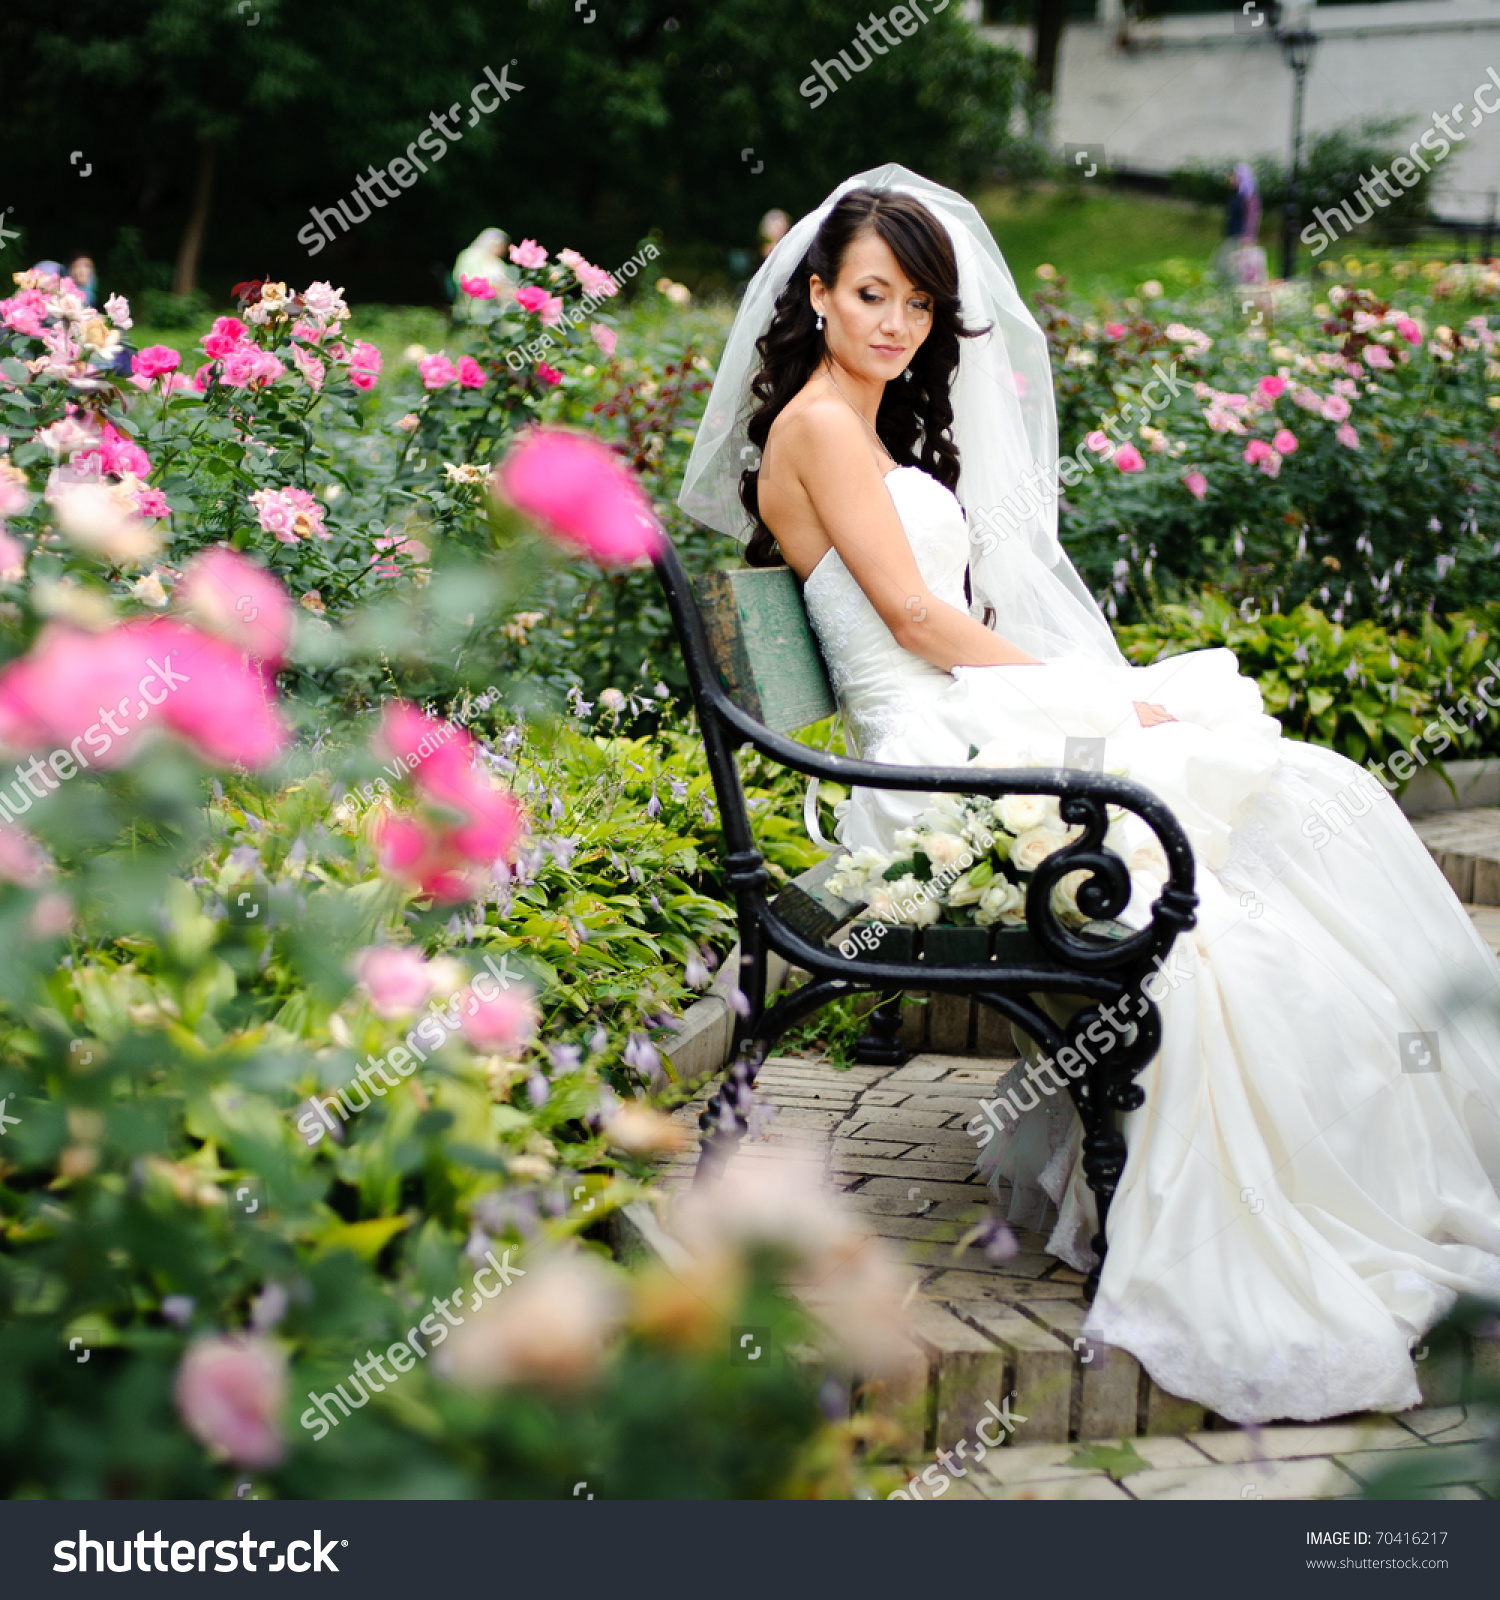 Beautiful girl in a wedding dress sitting alone among the roses